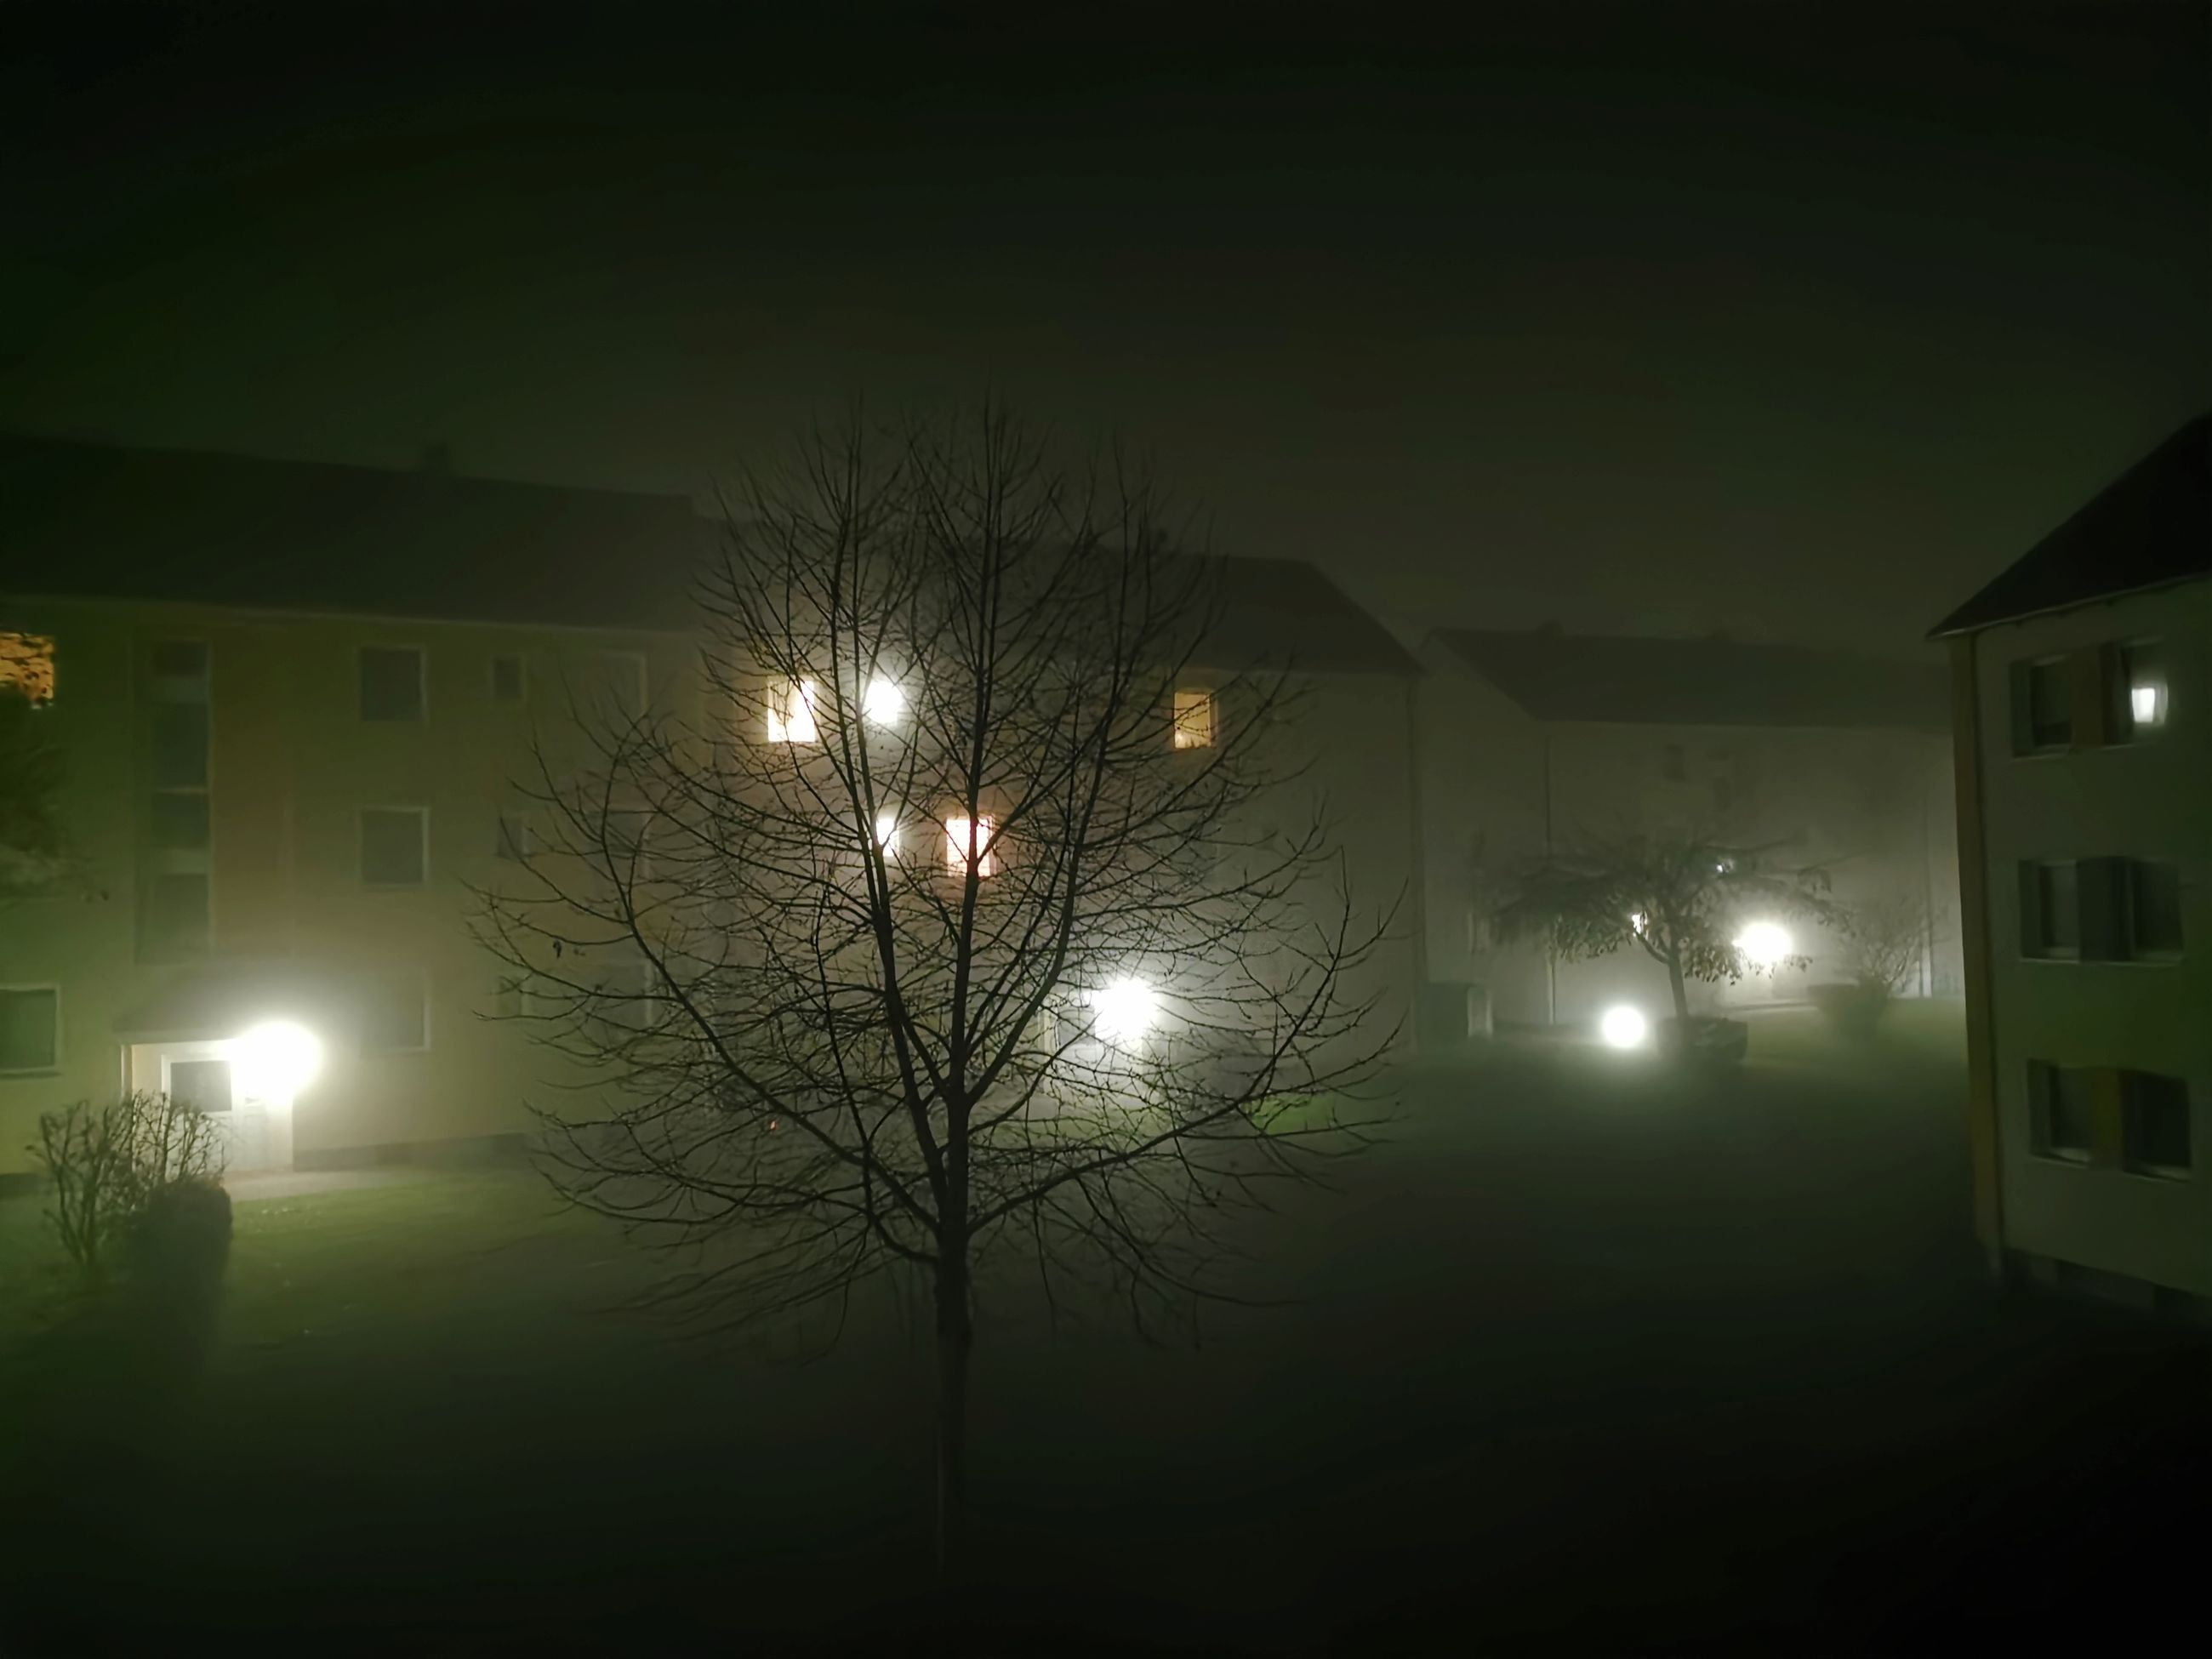 illuminated, night, light, architecture, lighting equipment, darkness, bare tree, built structure, building exterior, tree, no people, lighting, street light, street, plant, building, house, nature, fog, morning, city, outdoors, sky, glowing, residential district, light fixture, electricity